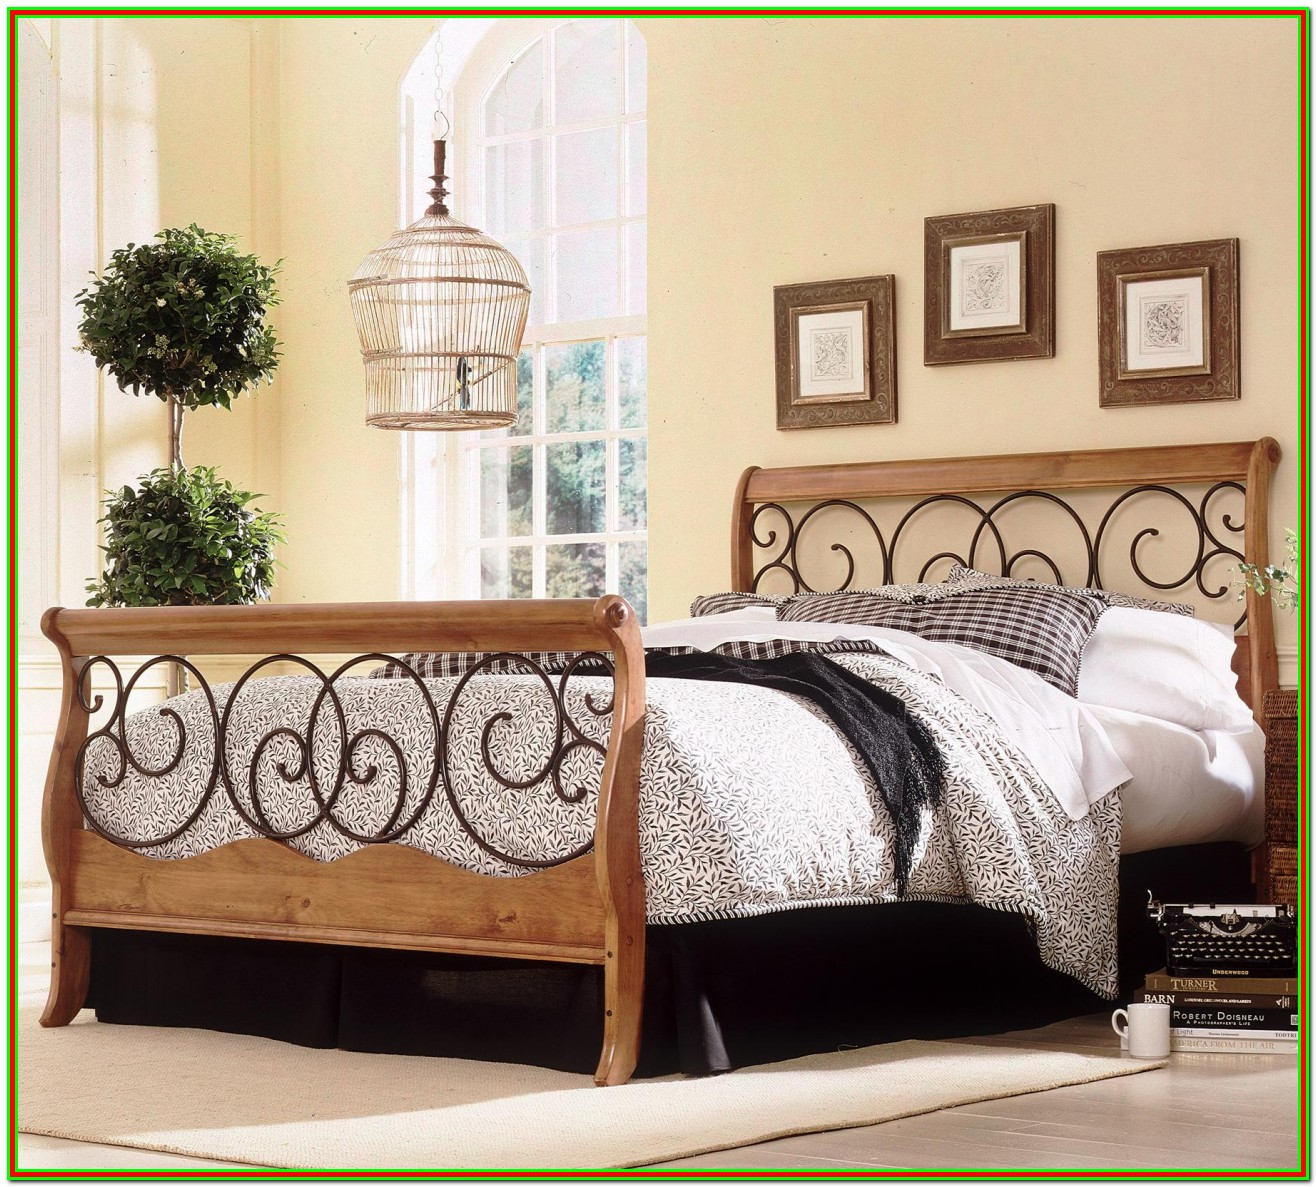 Queen Platform Bed With Headboard And Footboard